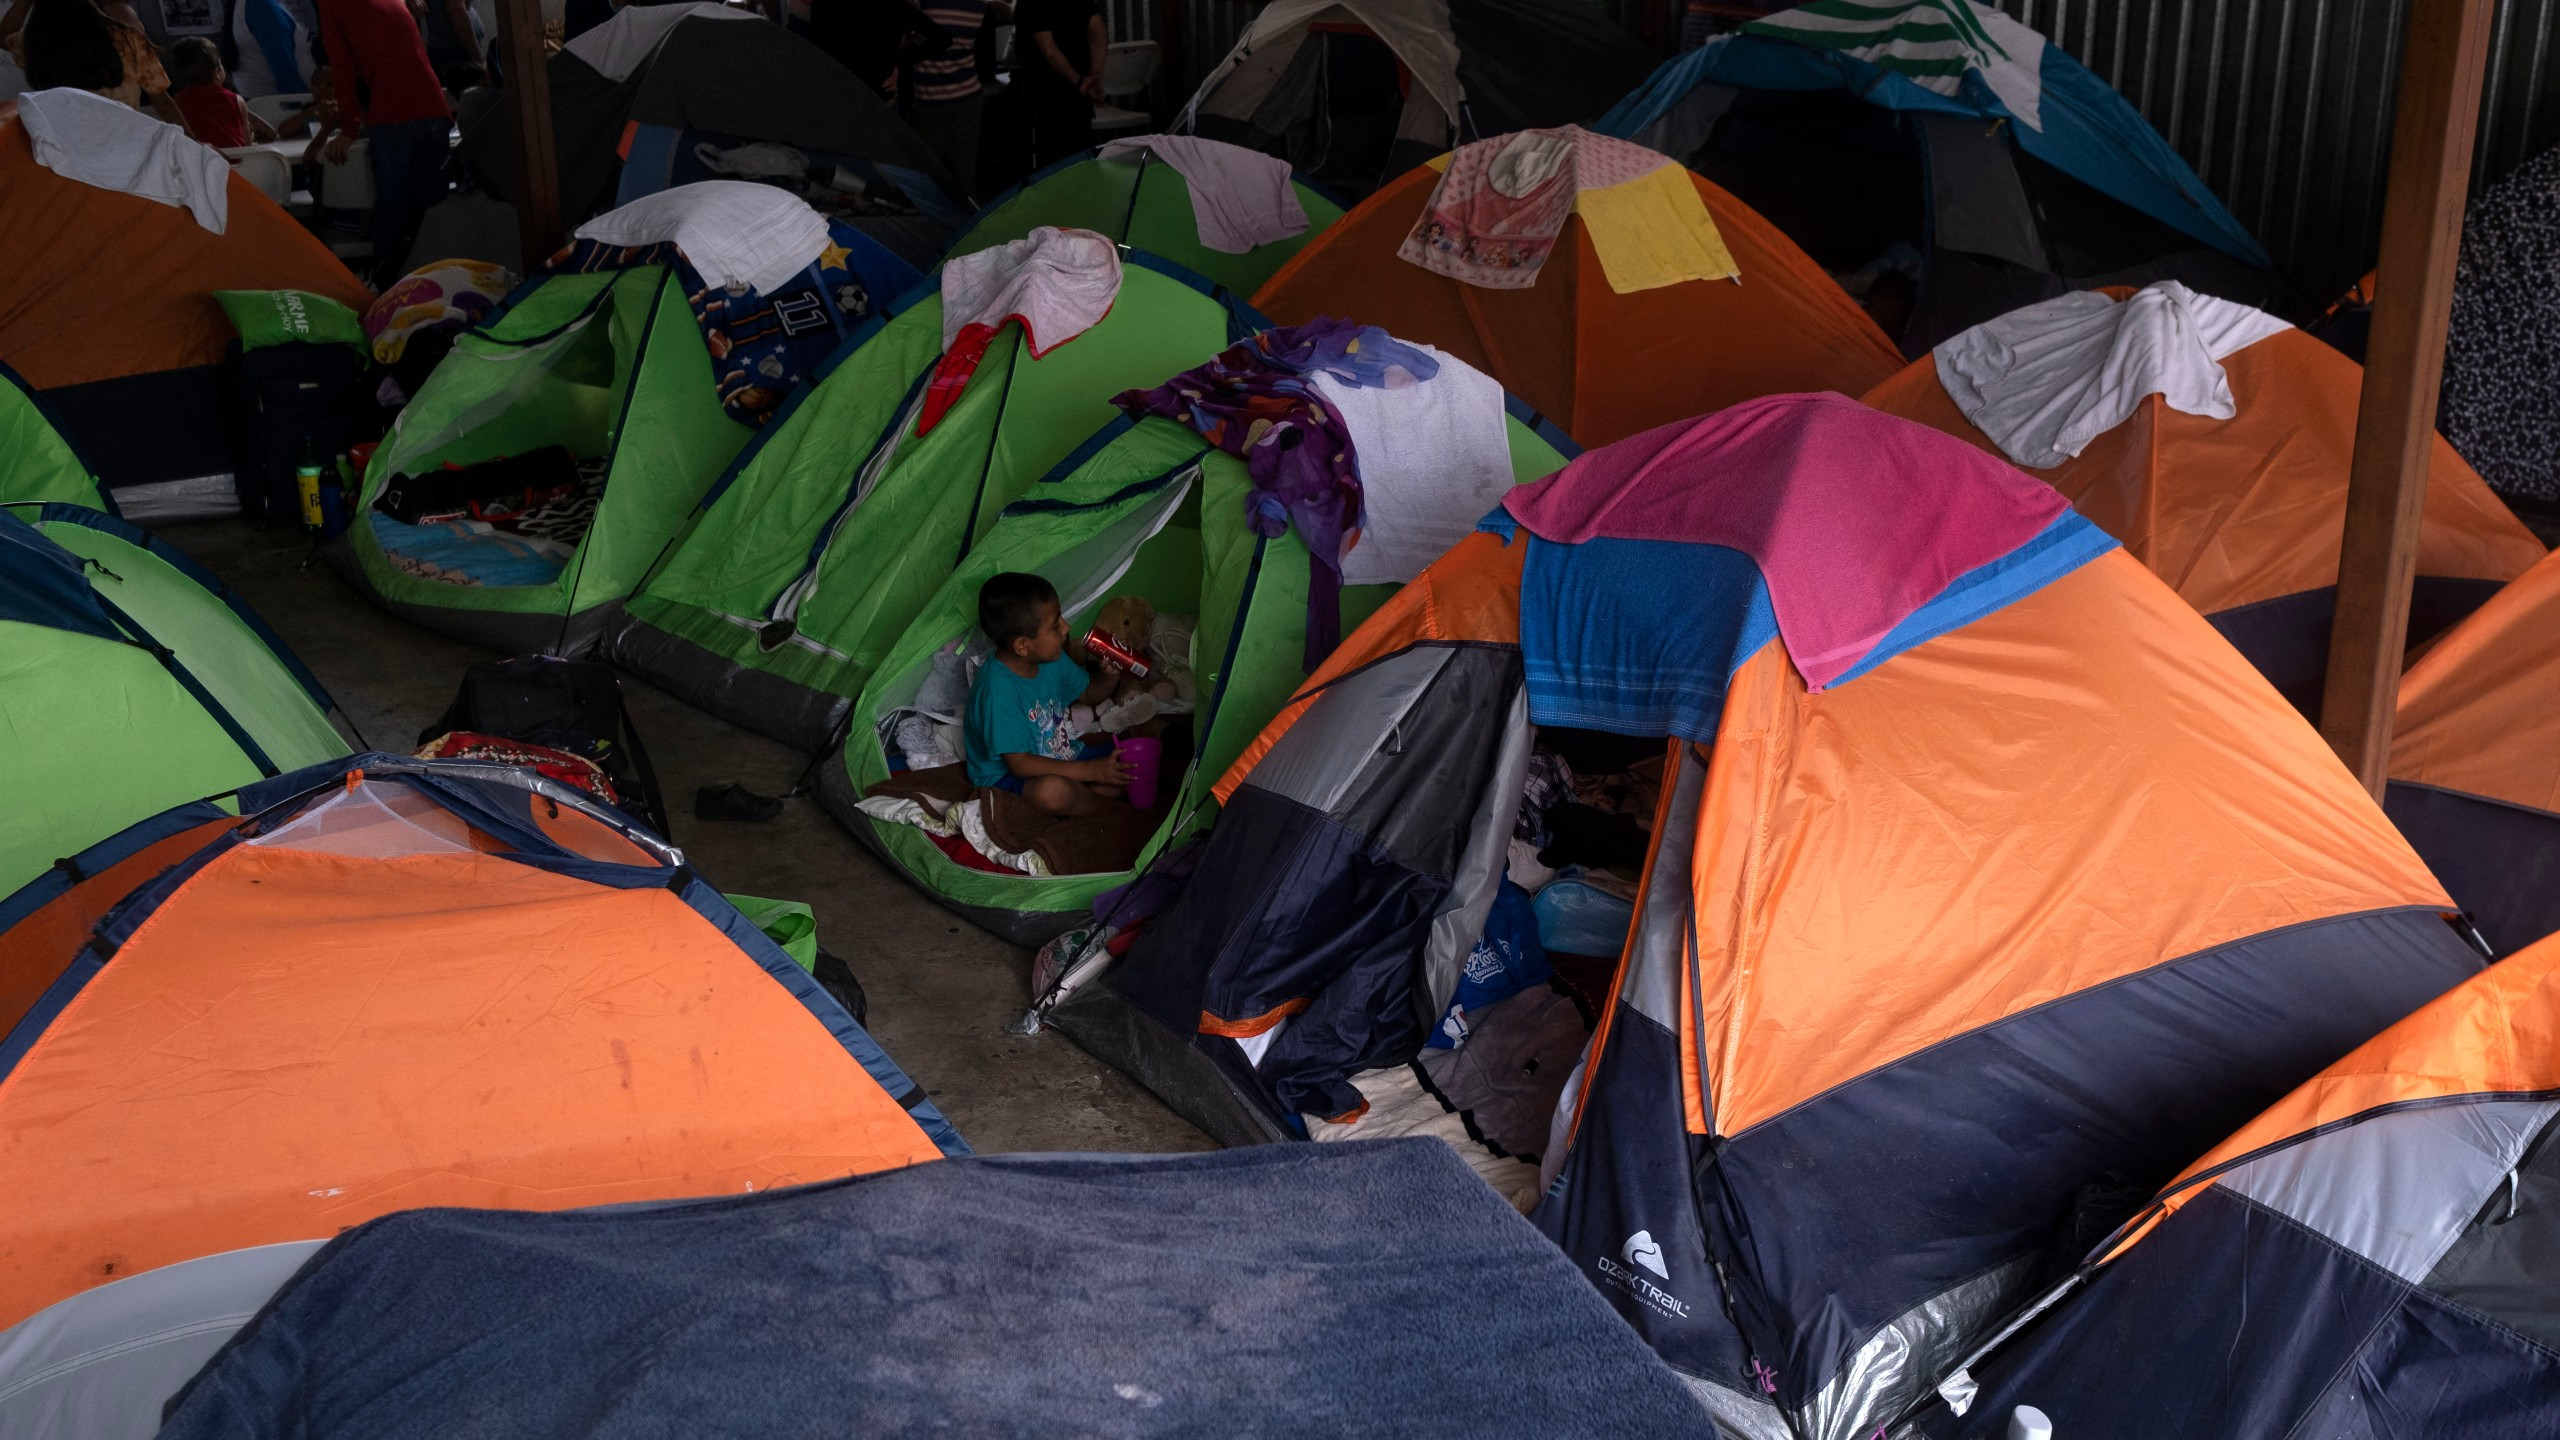 Asylum seekers and migrants are seen at a shelter in Tijuana, Baja Caifornia state, on Aug. 20, 2021. (Guillermo Arias / AFP / Getty Images)